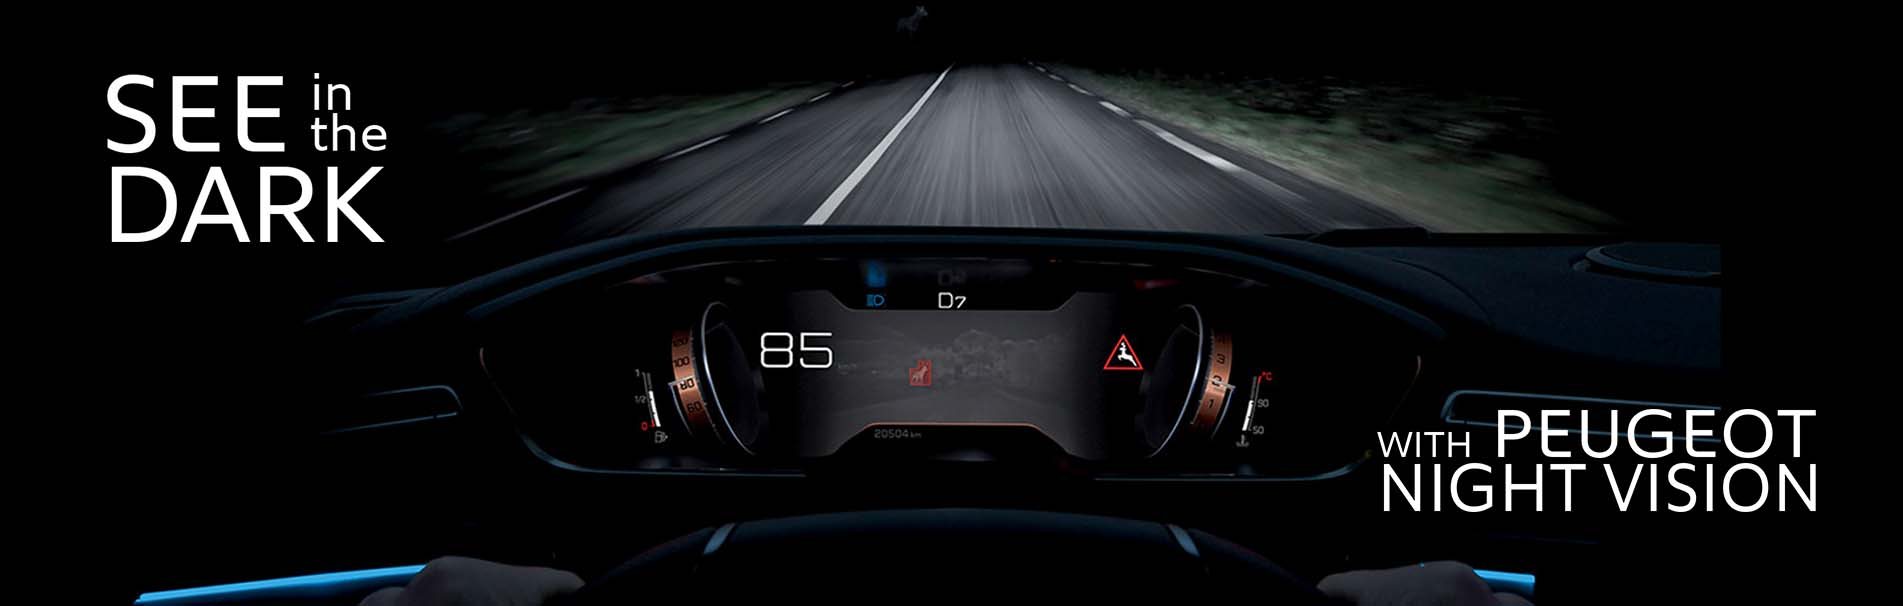 see-in-the-dark-with-peugeot-night-vision-new-508-fastback-sli